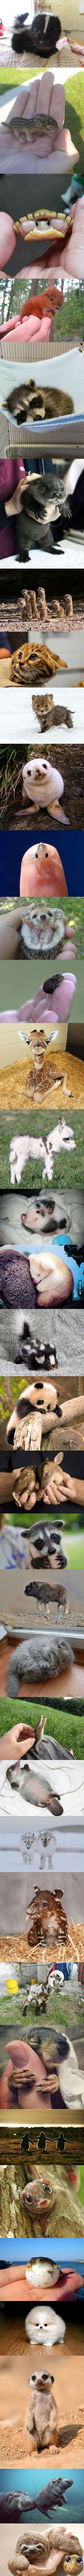 Cute baby animals collection! Baby platypus with it's little pink belly! And baby hippos and otters! Cut overload!